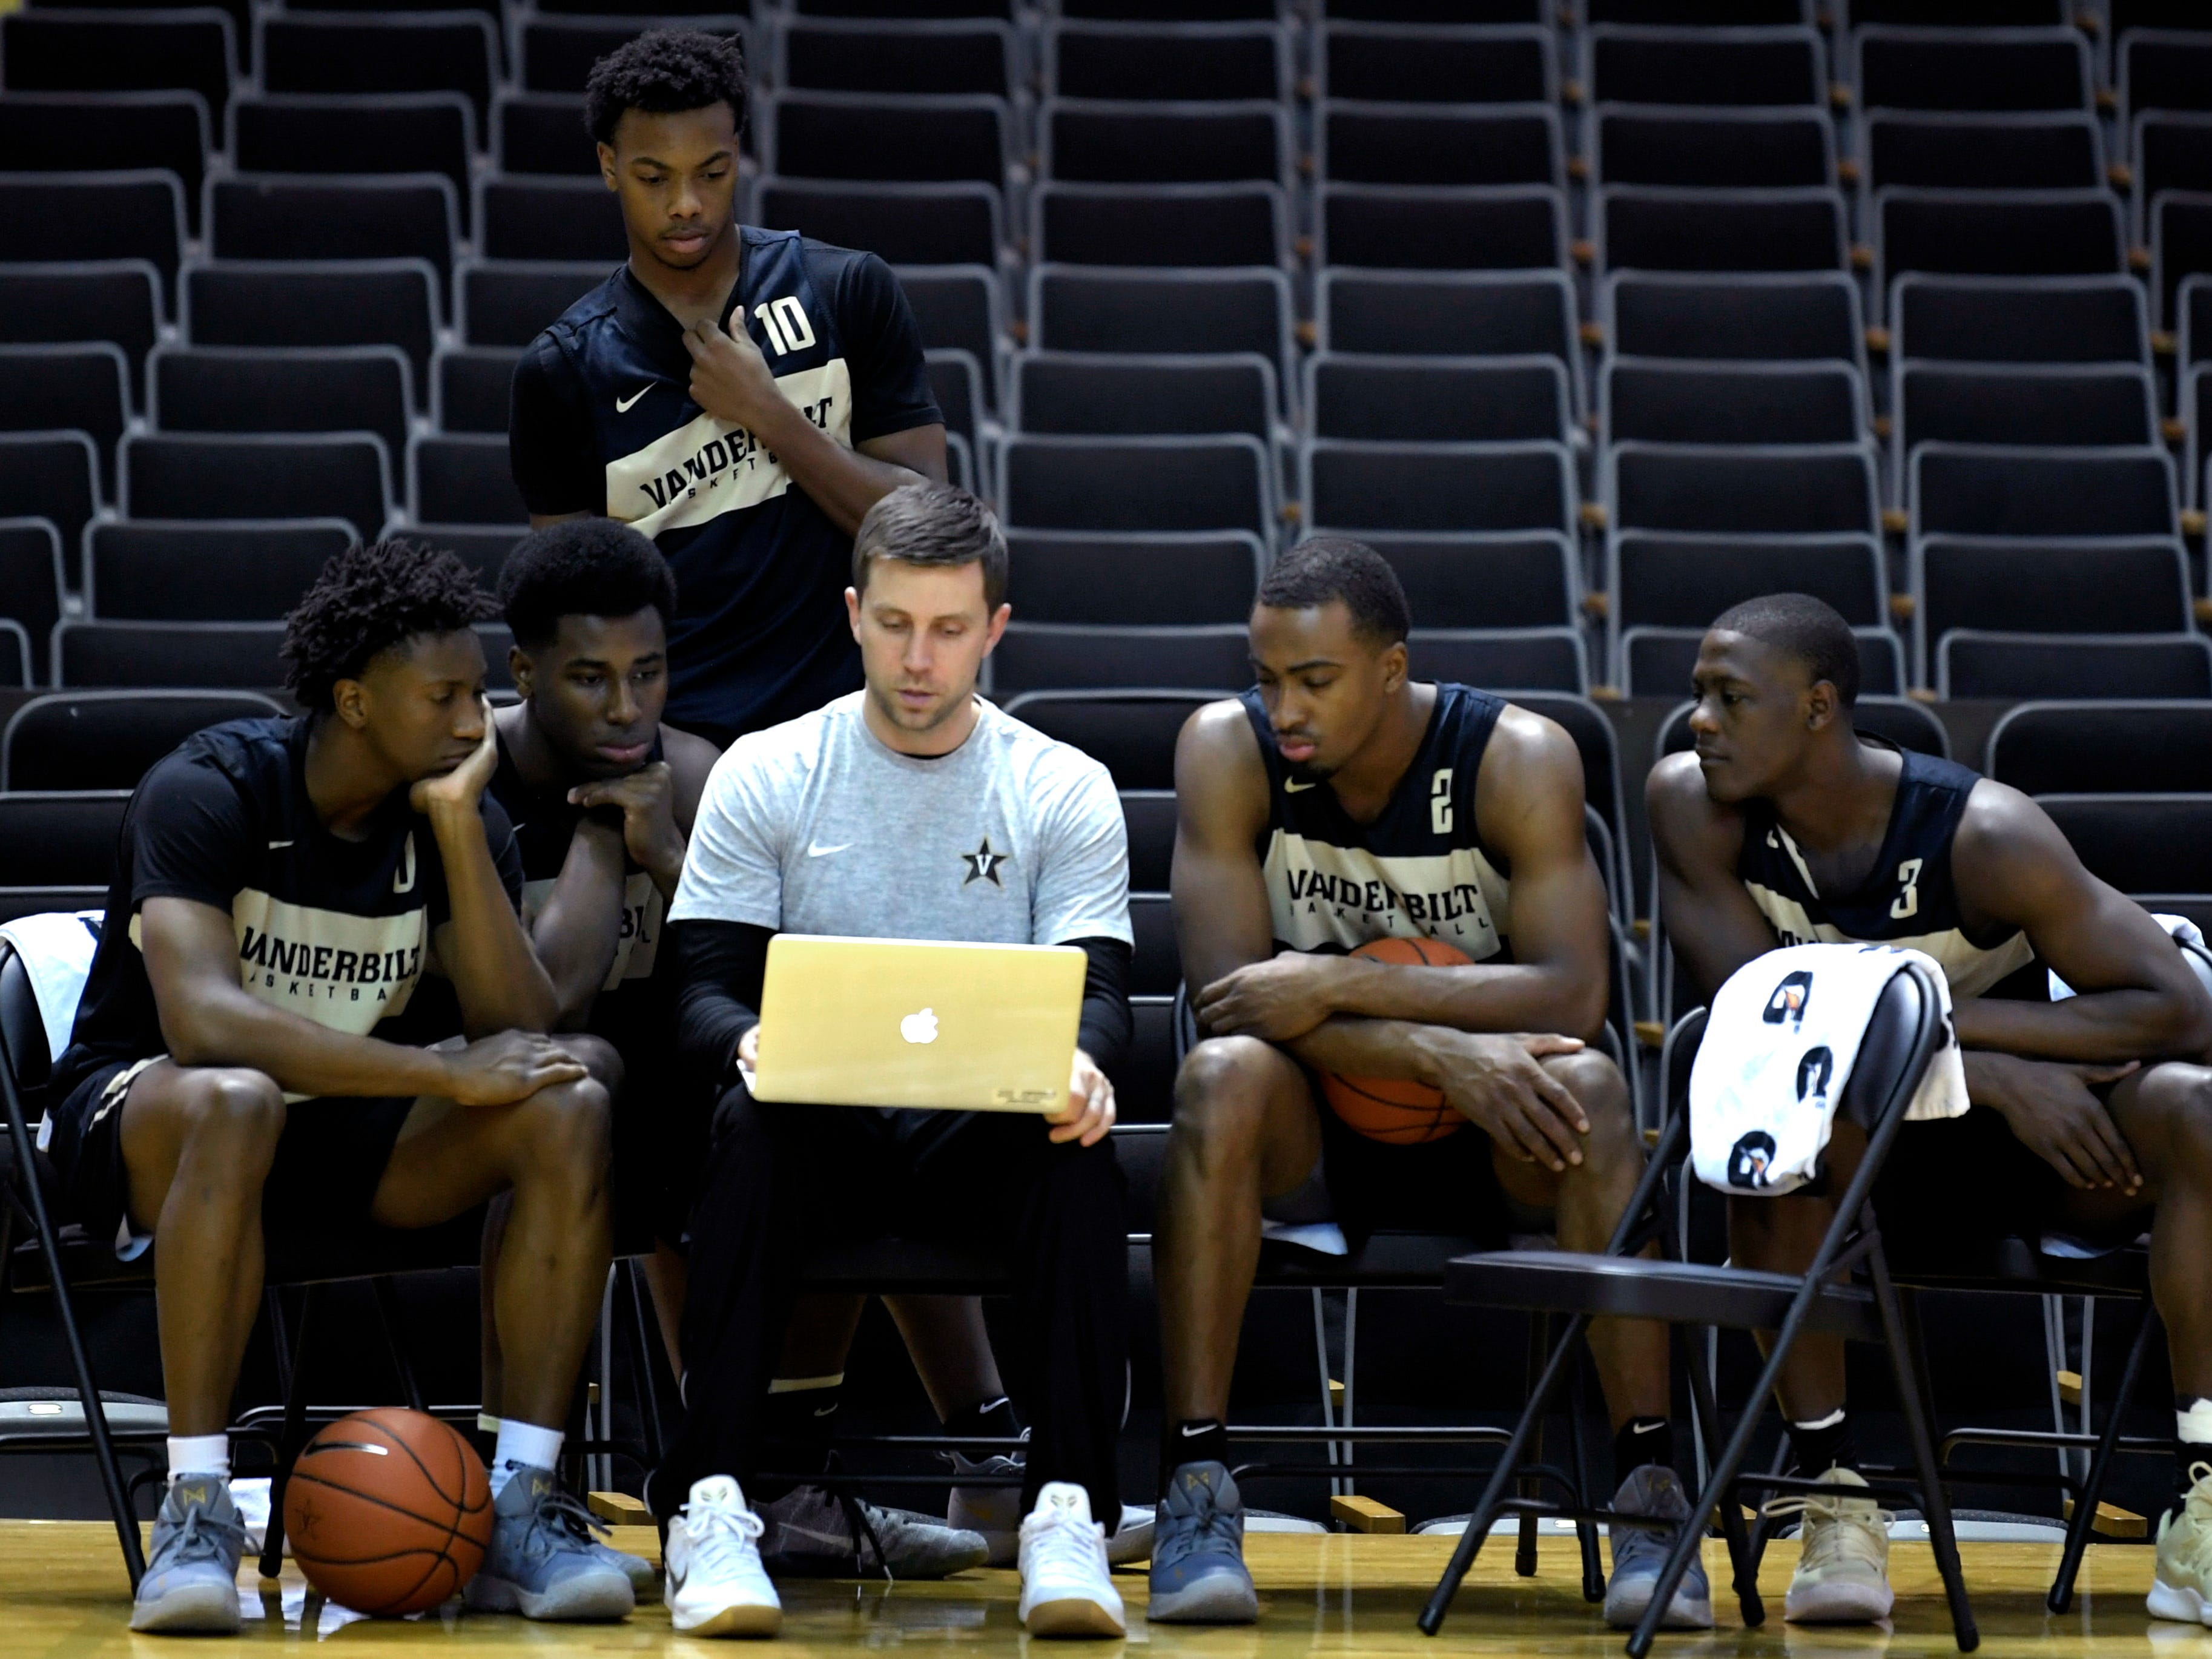 Vanderbilt basketball freshman Darius Garland,standing, watches film with assistant coach Jake Diebler and teammates during practice on Monday Oct. 22, 2018.